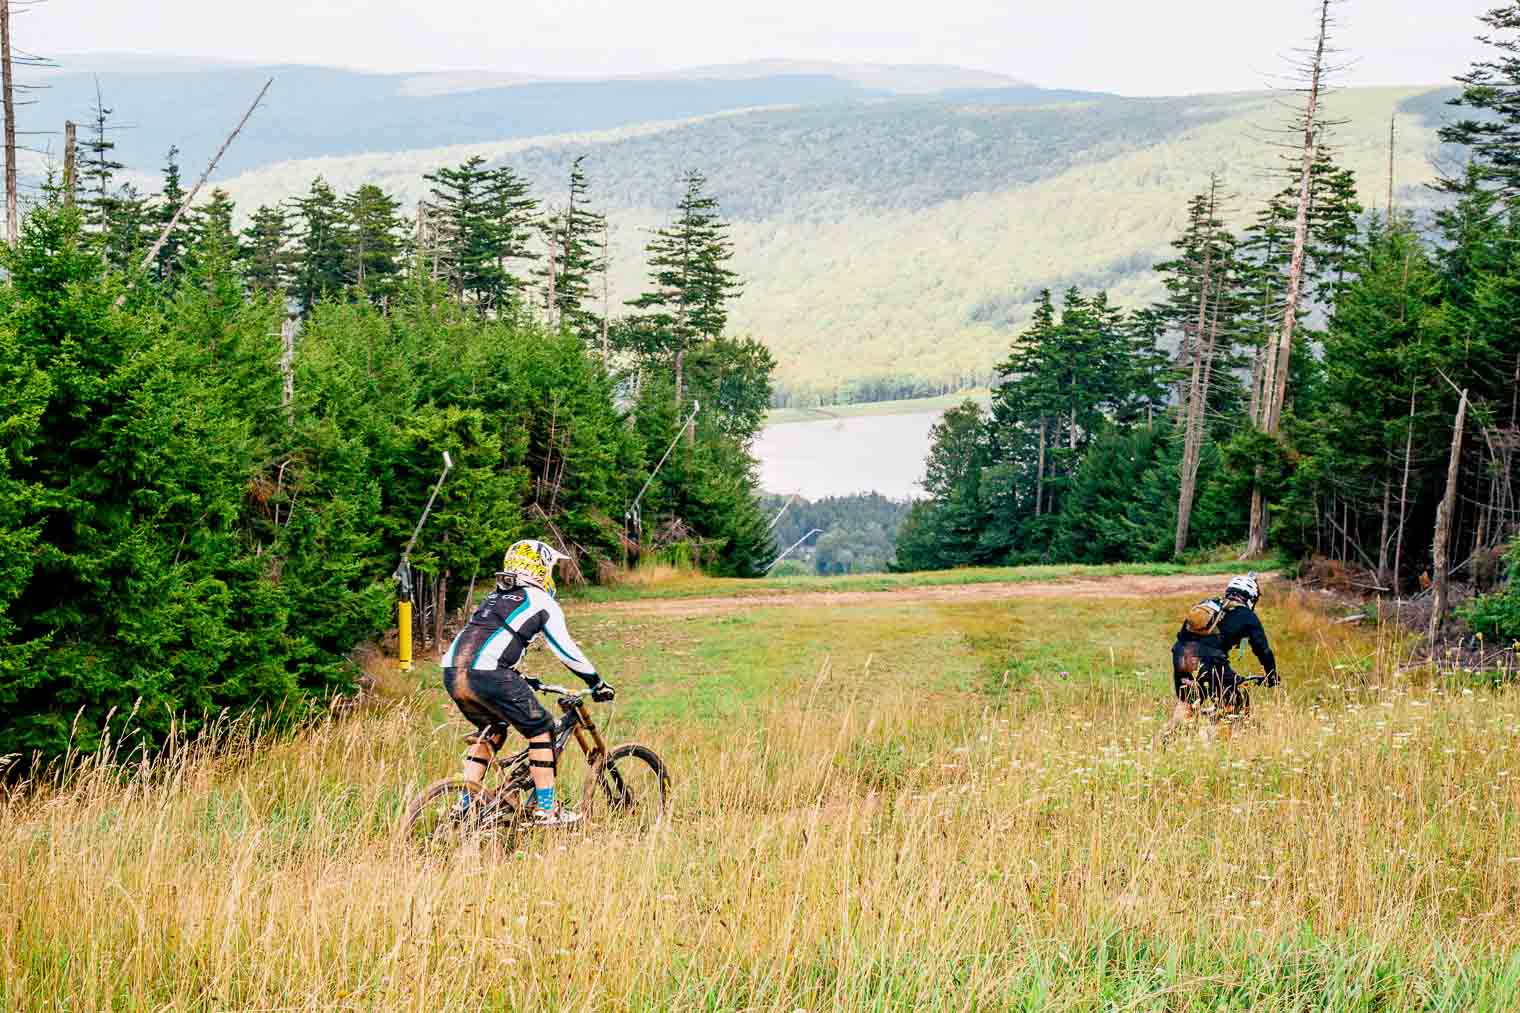 Downhill Mountain Biking at Snowshoe in West Virginia